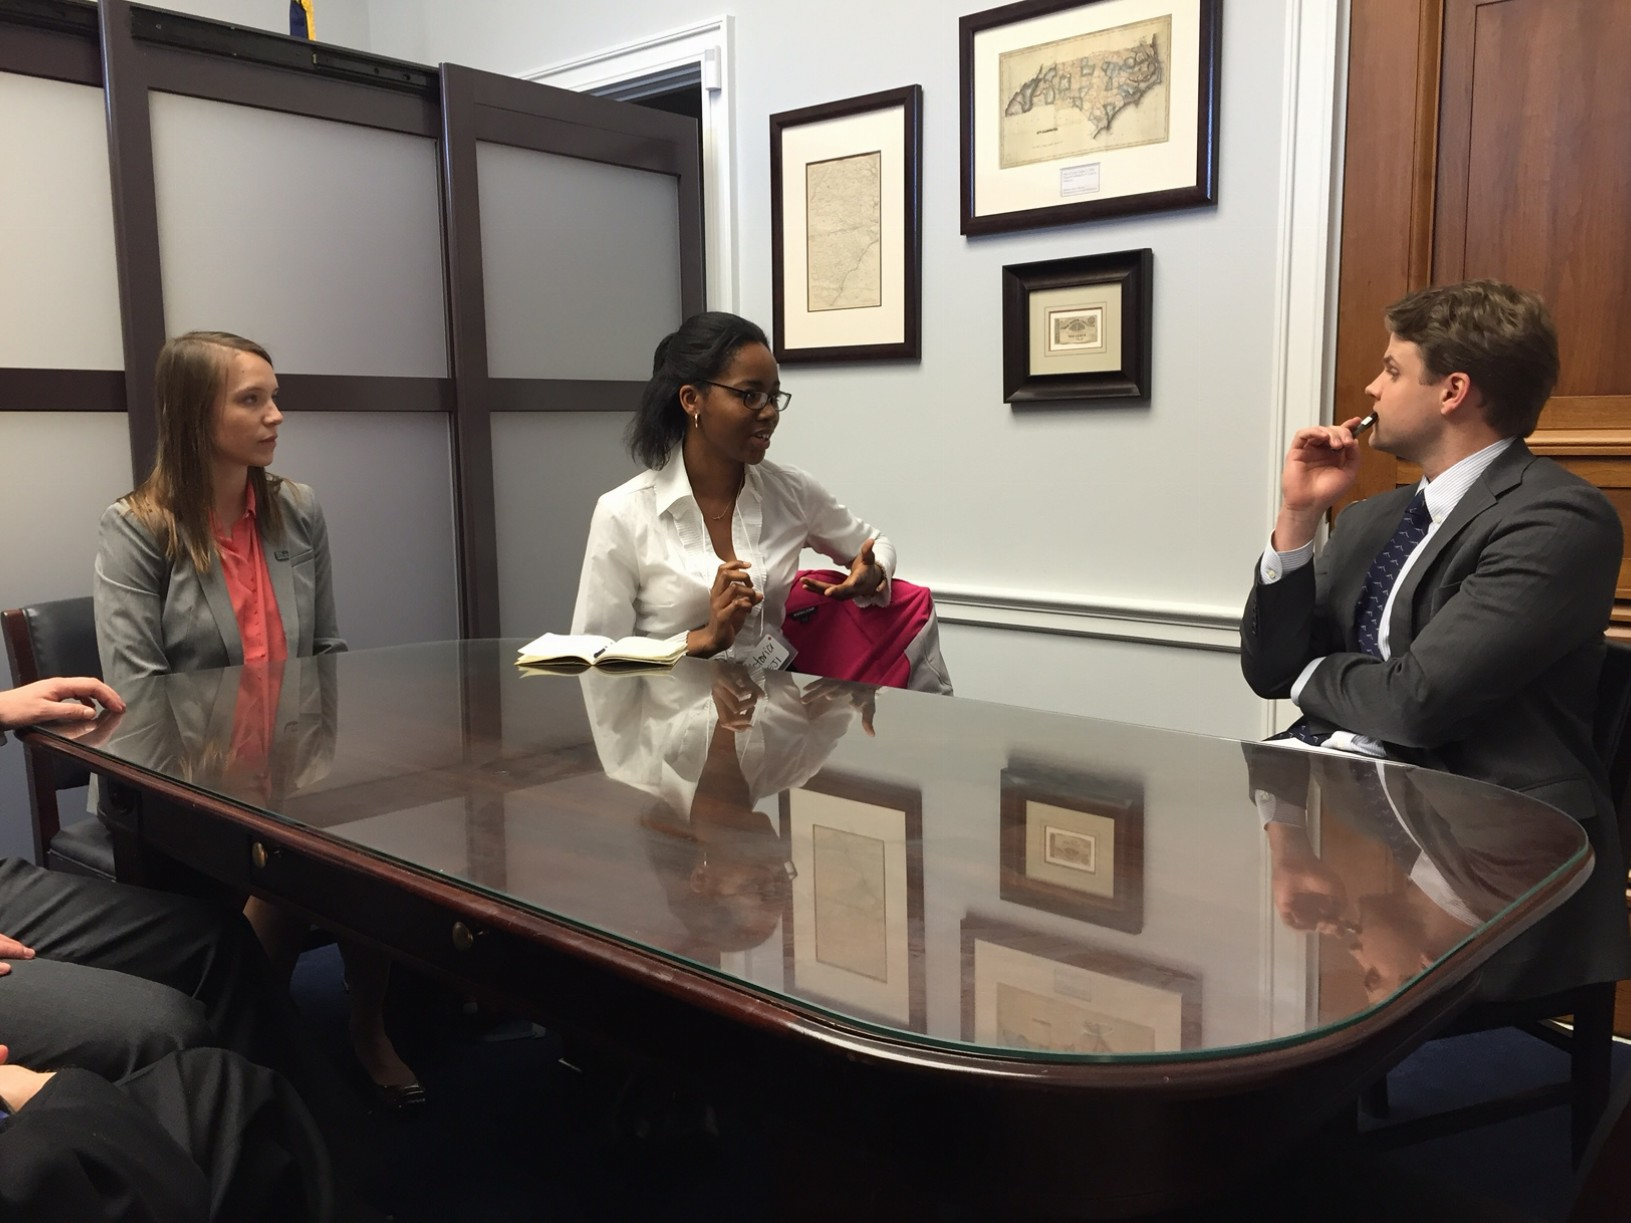 Victoria Nneji (center) makes the case for the importance of scientific research to James Hunter, senior legislative assistant for Rep. David Price (D-NC).